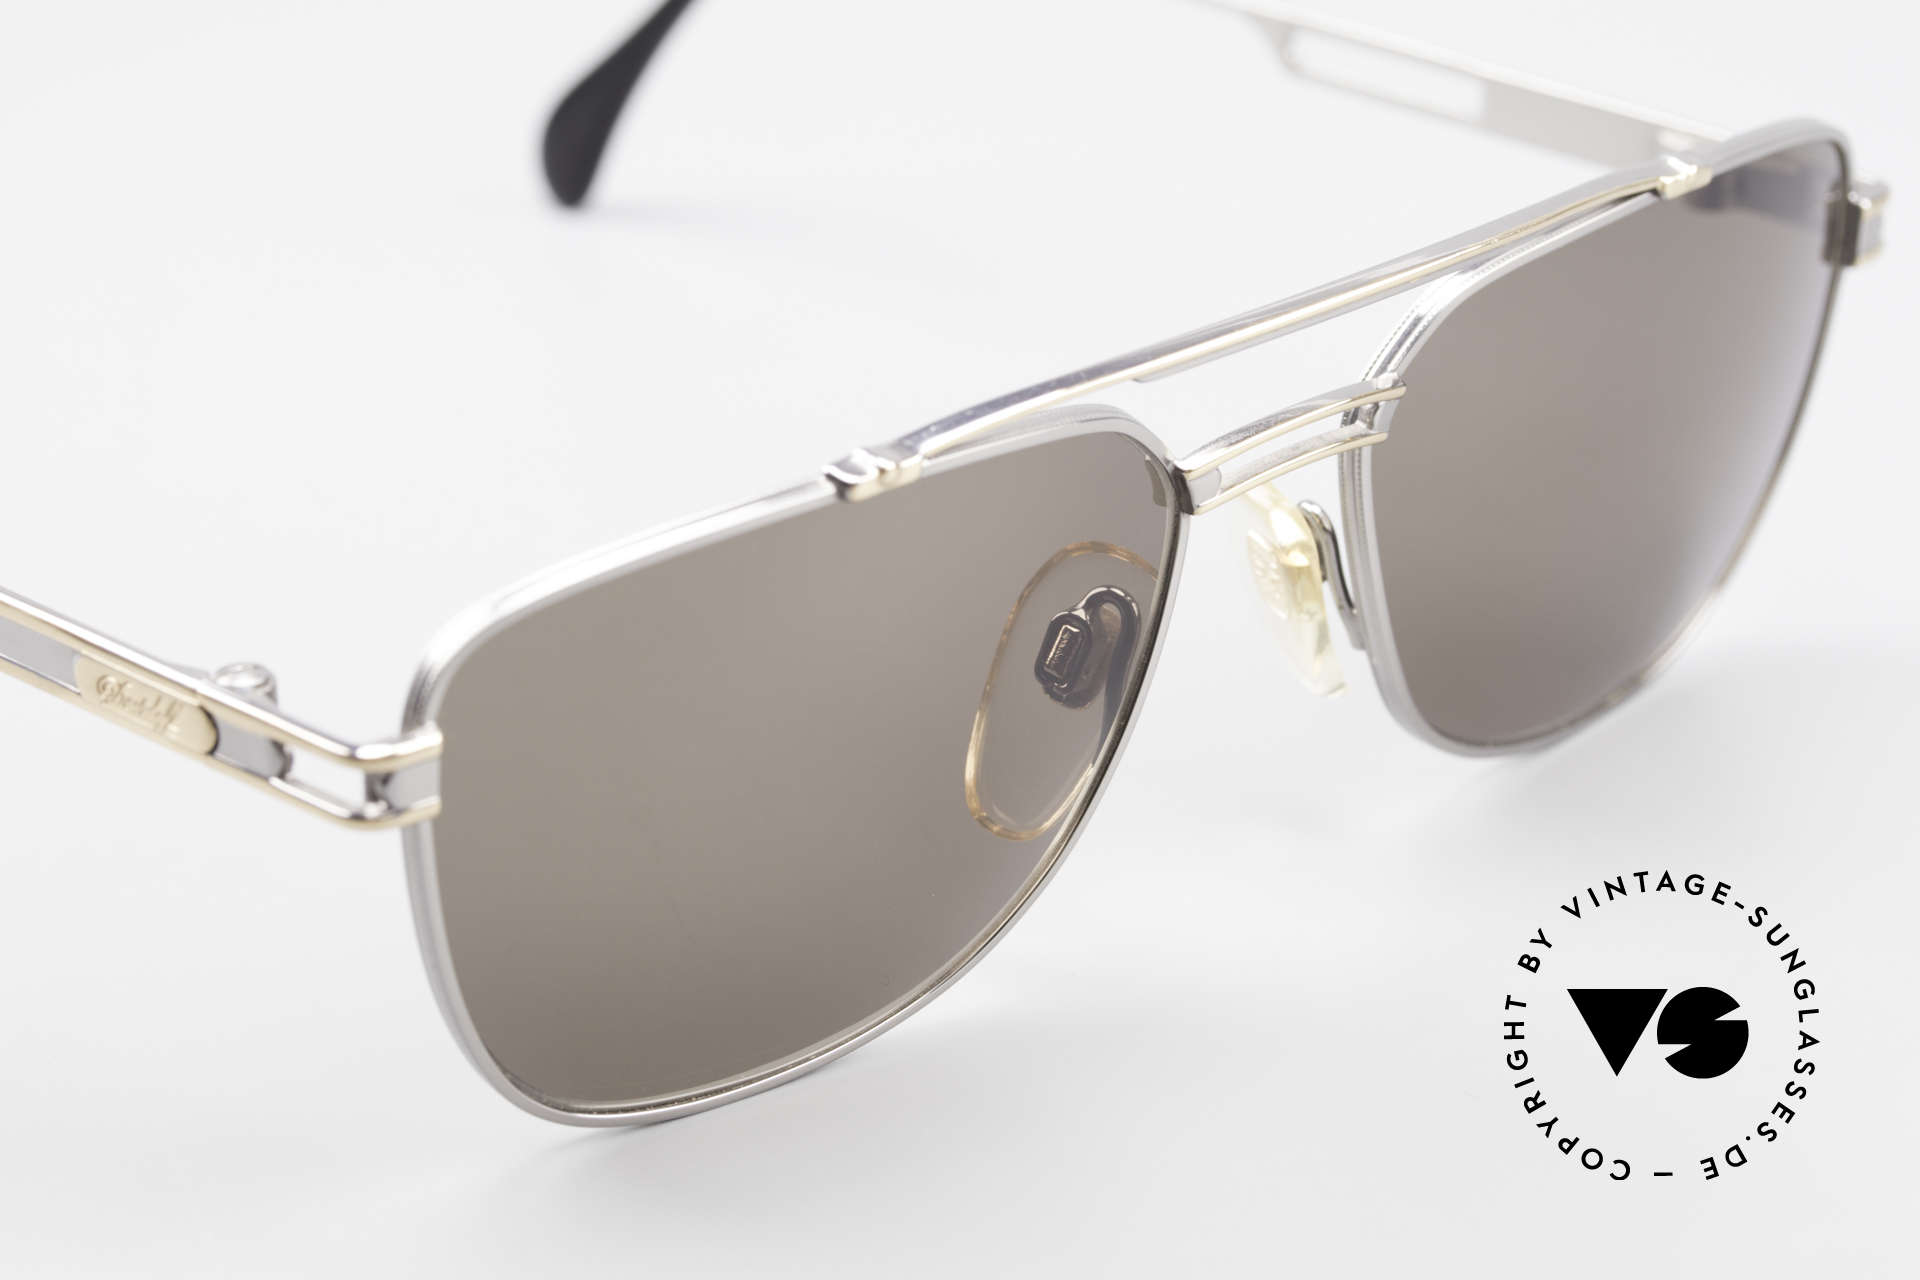 Davidoff 708 Classic Men's Sunglasses, new old stock (like all our vintage Davidoff sunglasses), Made for Men